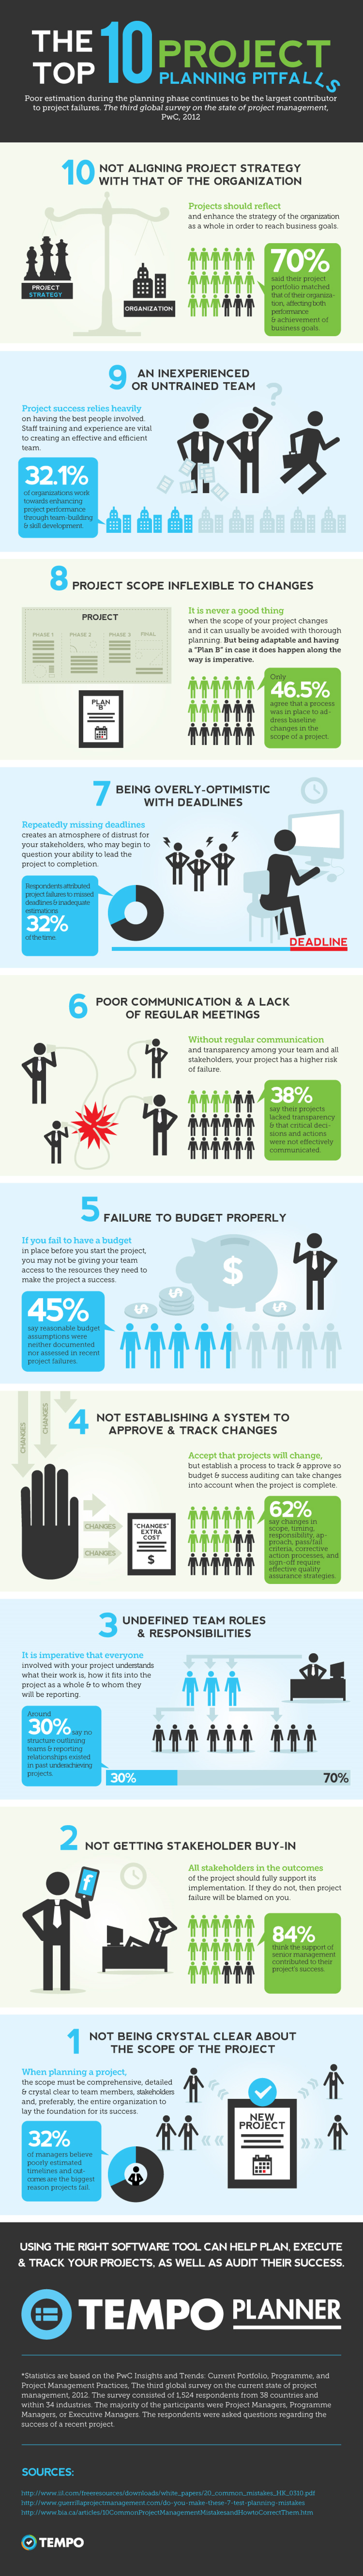 The Top 10 Project Planning Pitfalls. Infographic